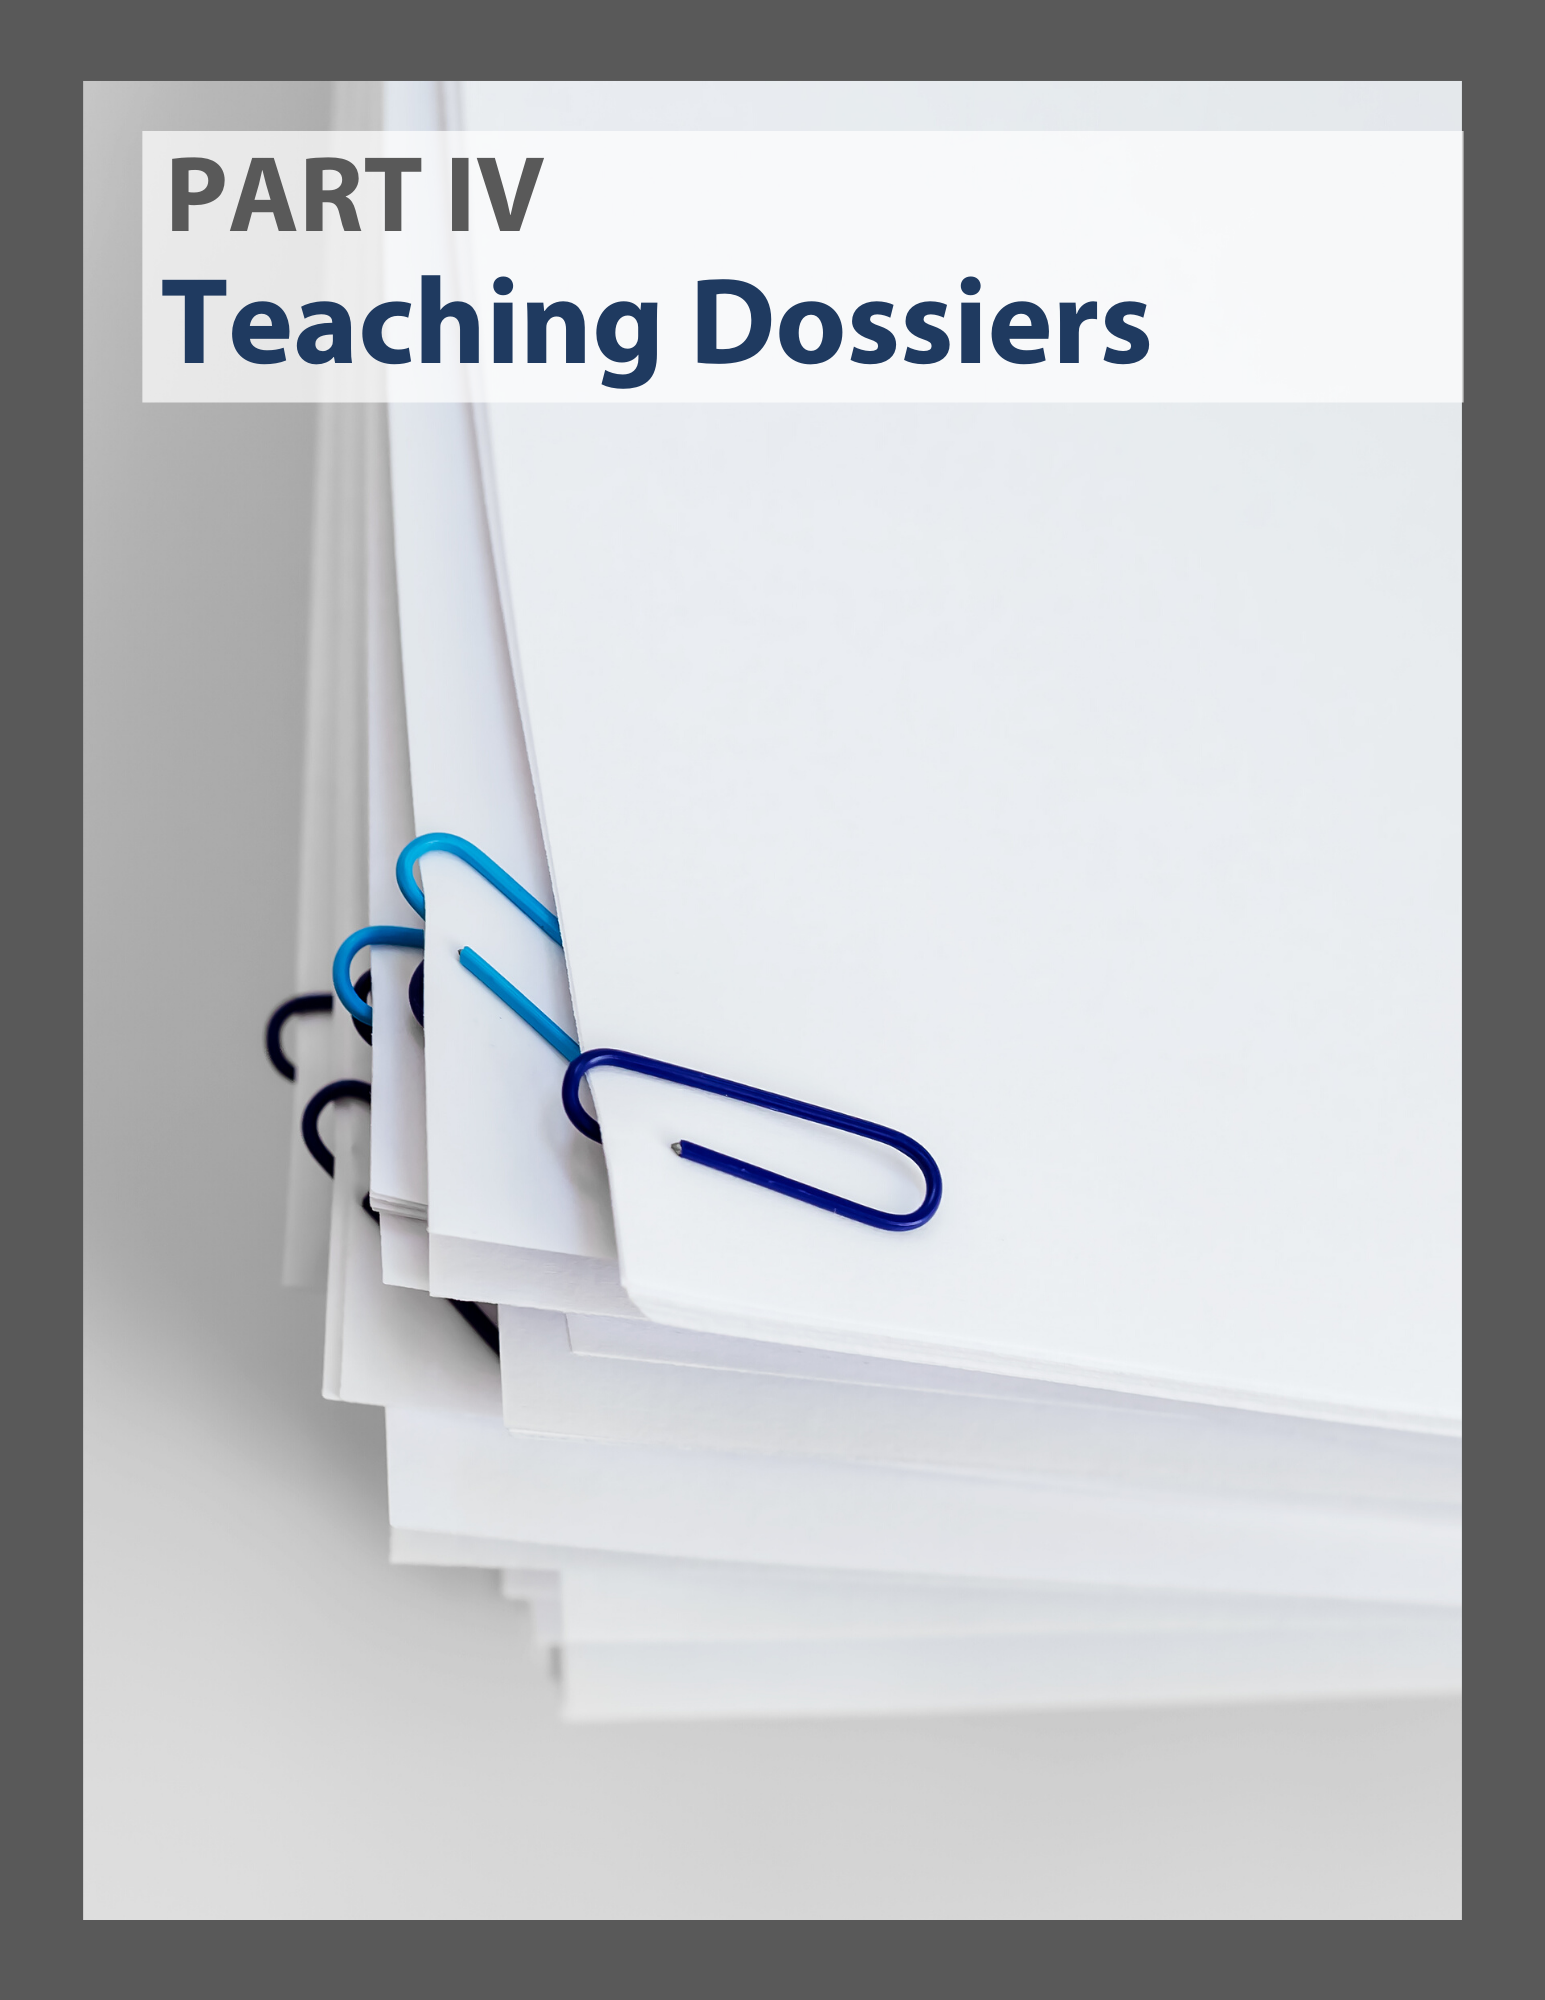 Link to a PDF  - Part 4: Teaching Dossiers